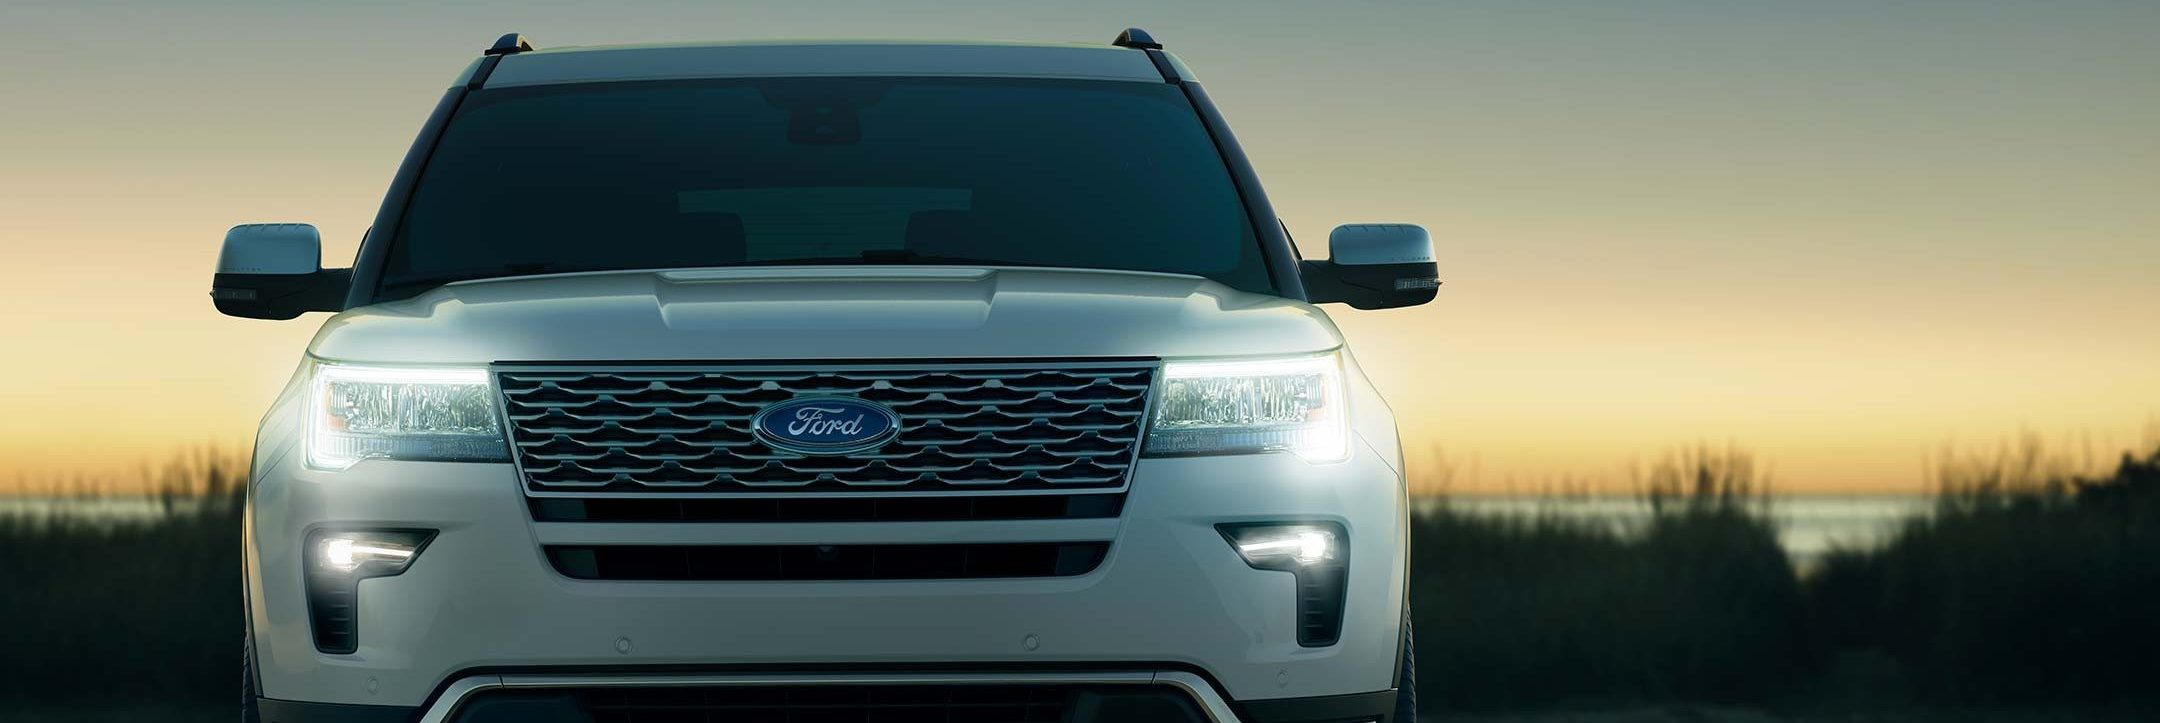 The unique grille with satin-chrome finish is standard on the 2018 Ford Explorer Platinum